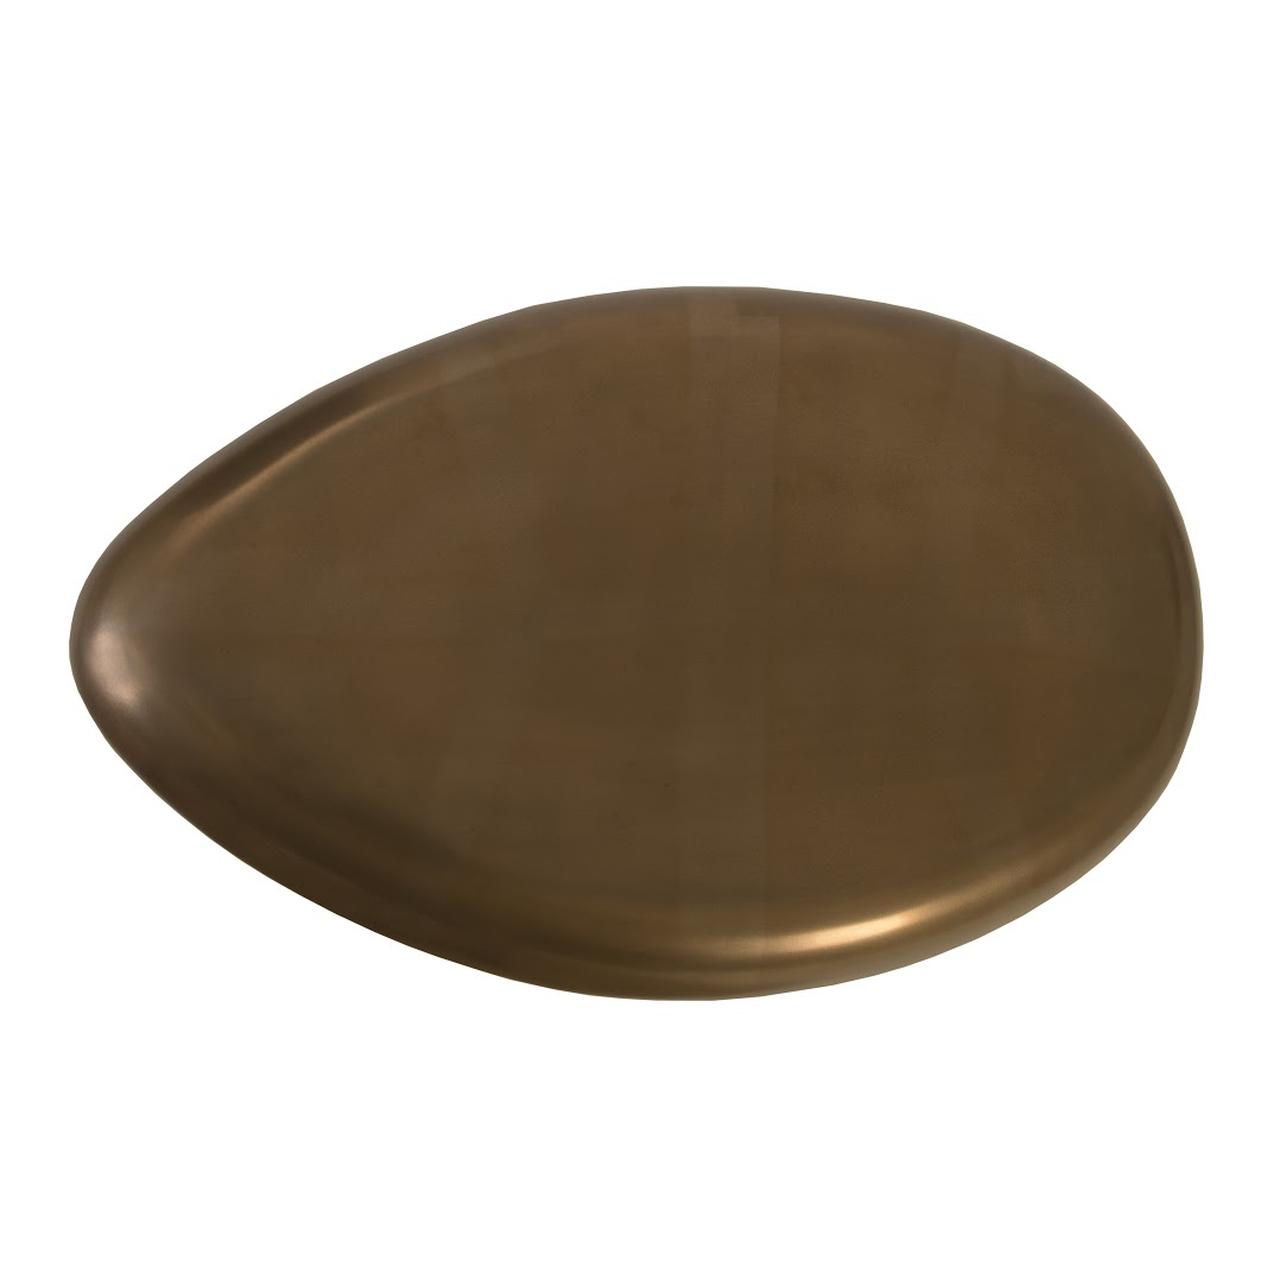 River Stone Oval Outdoor Coffee Table - Various New Colors and Sizes